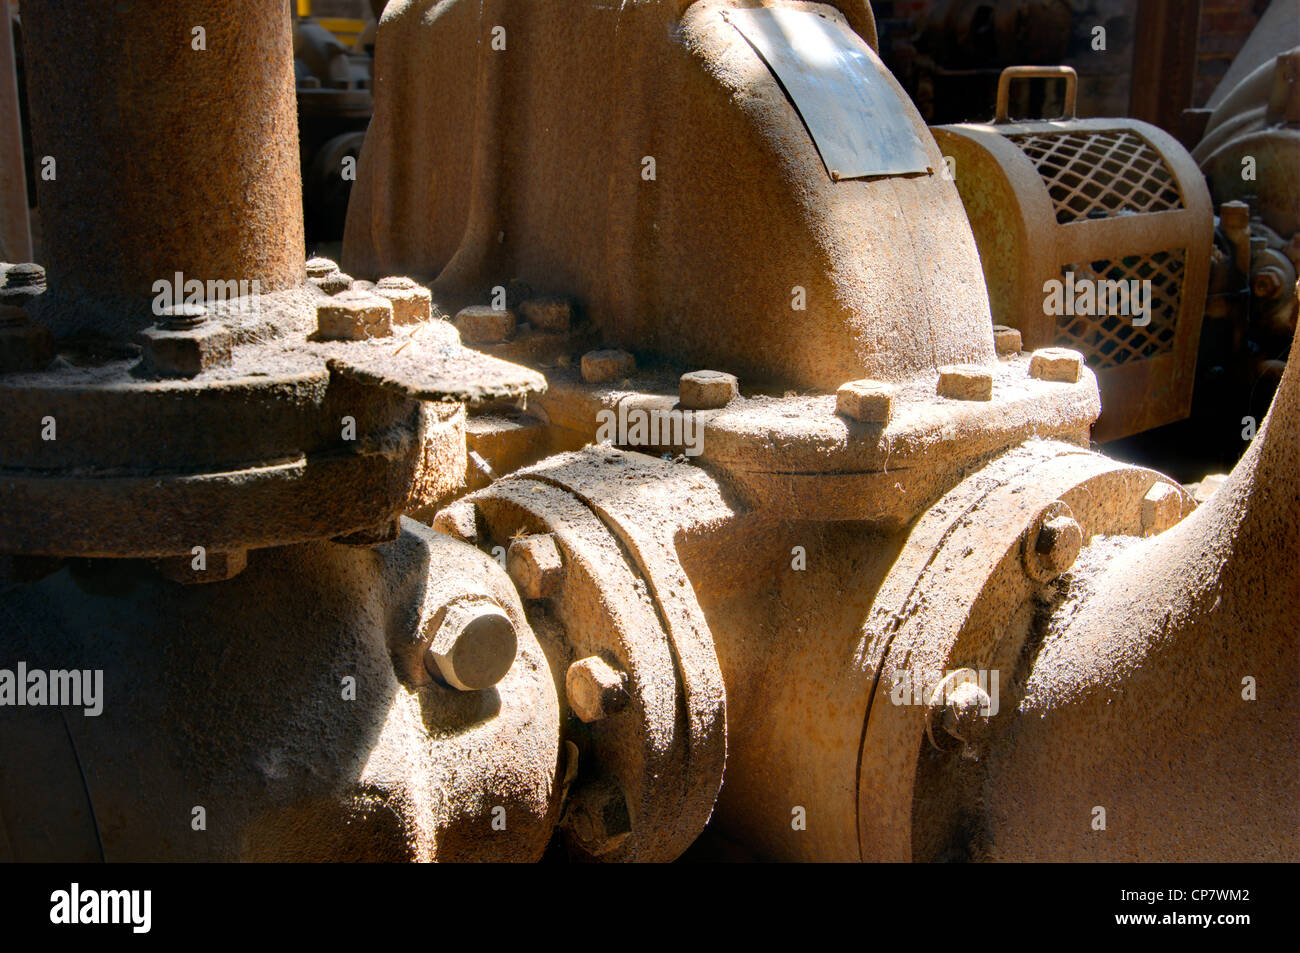 old machinery parts in a mill - Stock Image